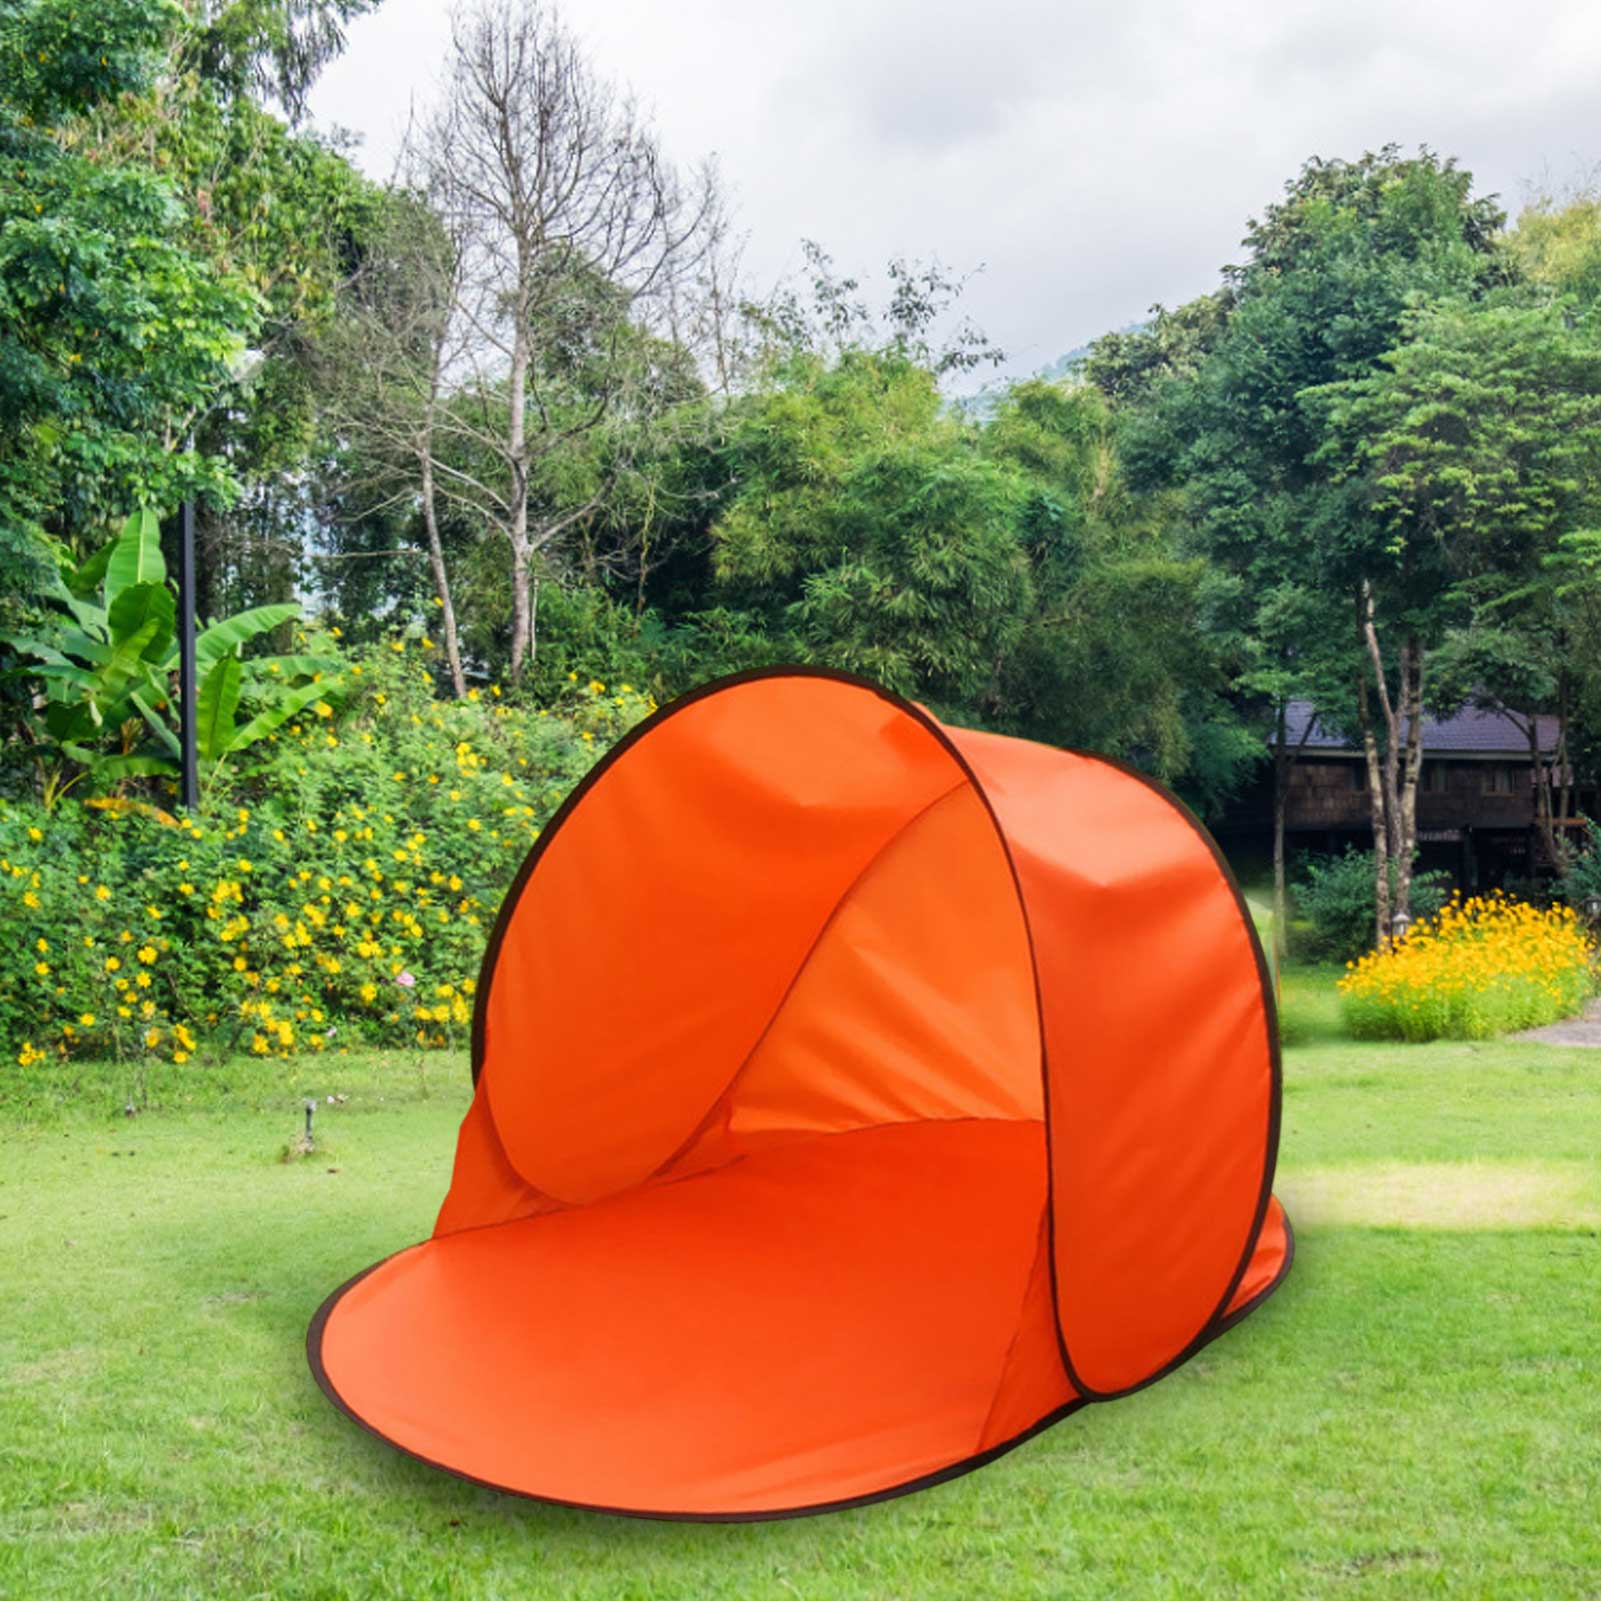 Leisure Tent Automatically Open Single Layer Sun Protection Camping Tent For Beaches Camping Hiking